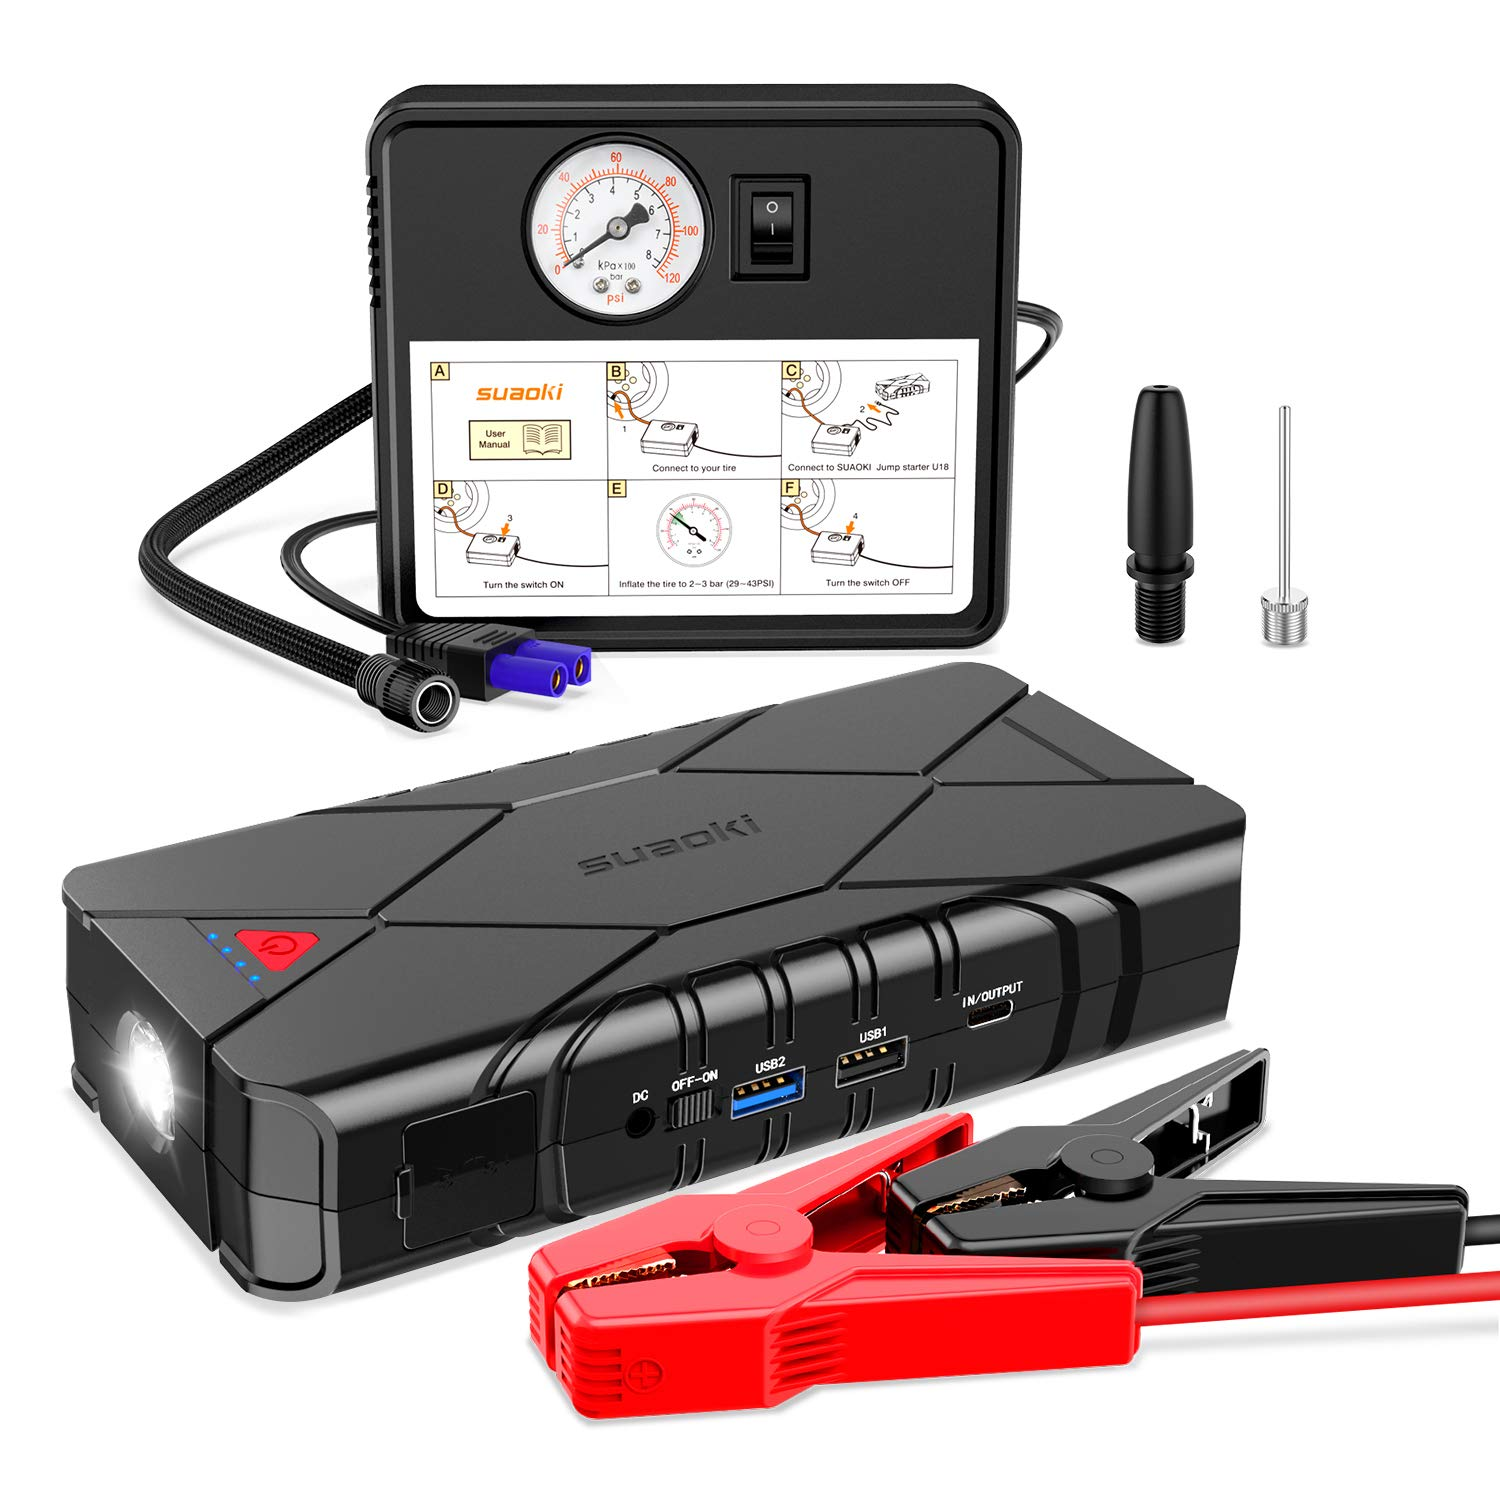 SUAOKI 1200A Peak Car Jump Starter Battery Pack 16000mAh Air Compressor (up To 7.5L Gas Or 6.0L Diesel Engine) With Type-C In/Out, Quick Charge 3.0 Ports, LED Light For Vehicles SUV Trucks (U18 Plus)